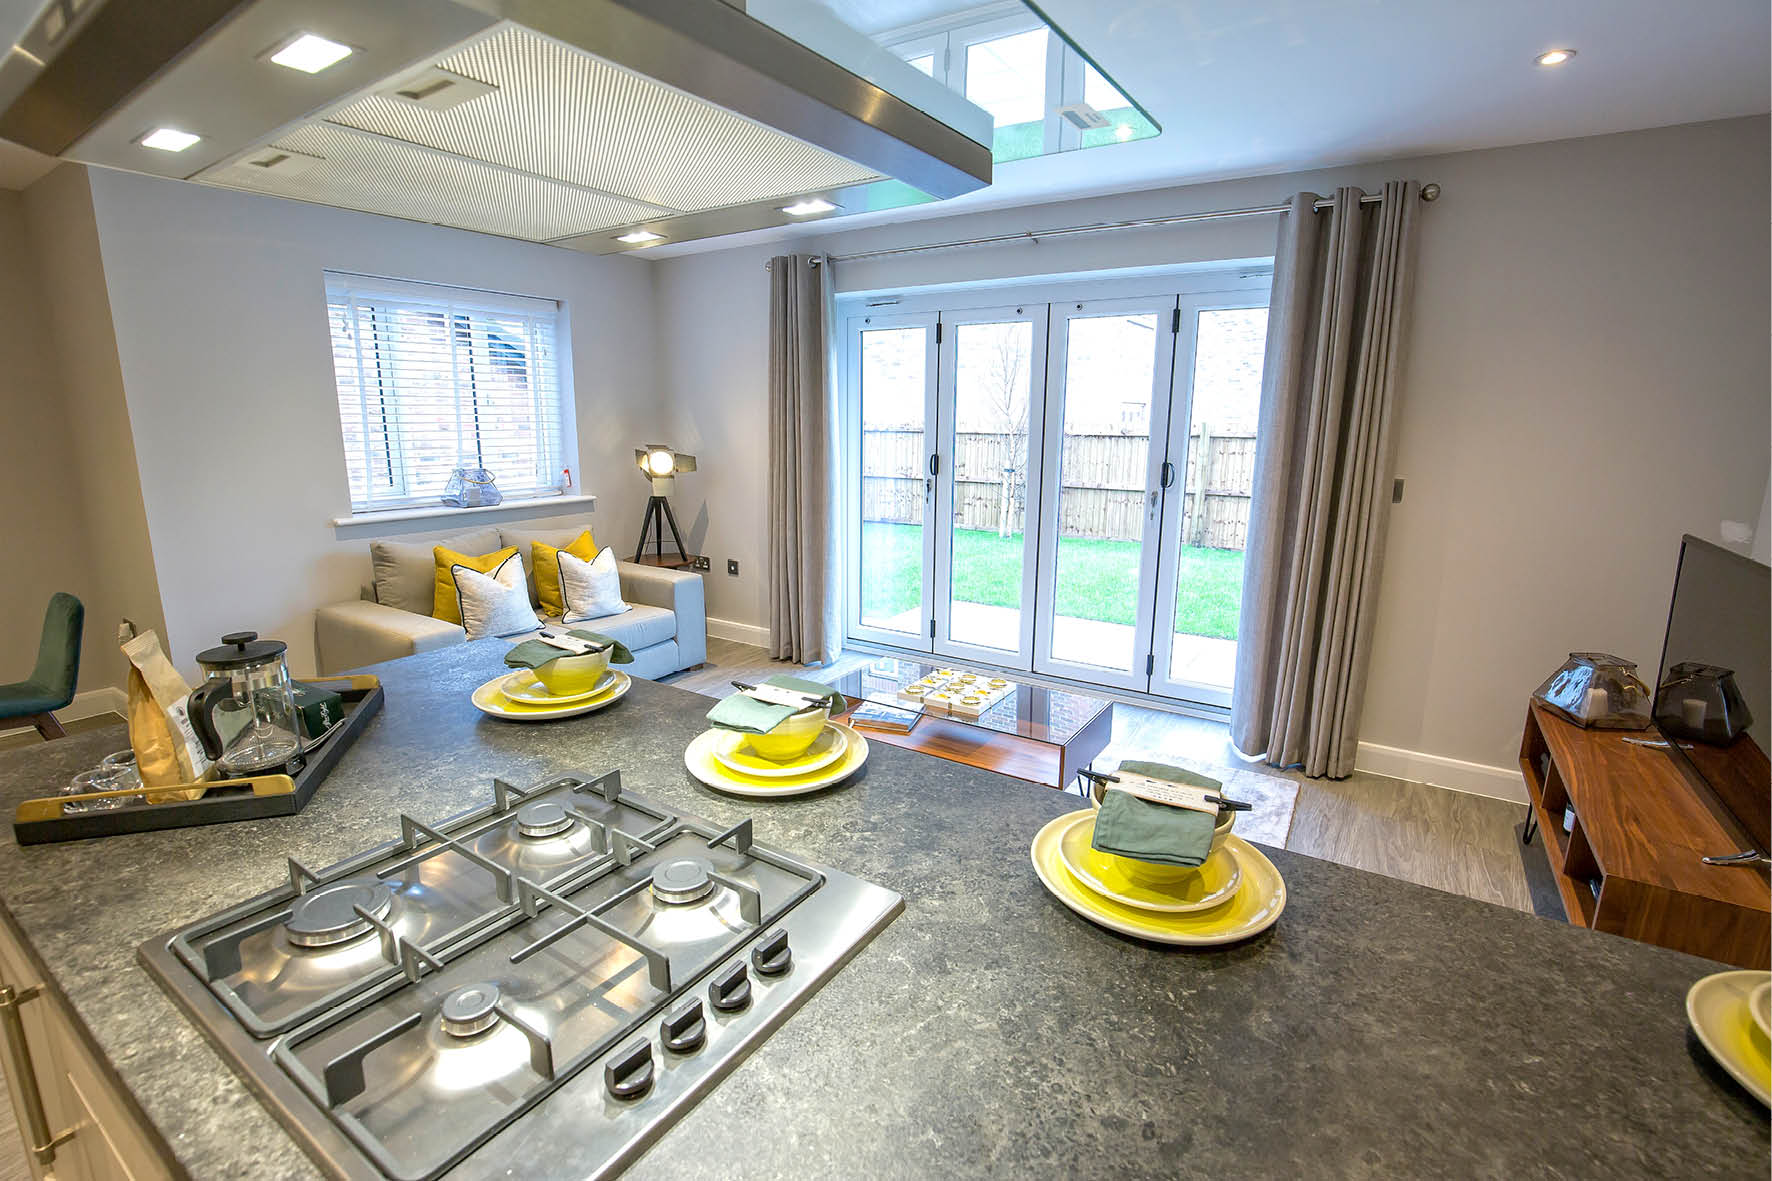 Plot 51 >> The kitchen is at the hub of the property